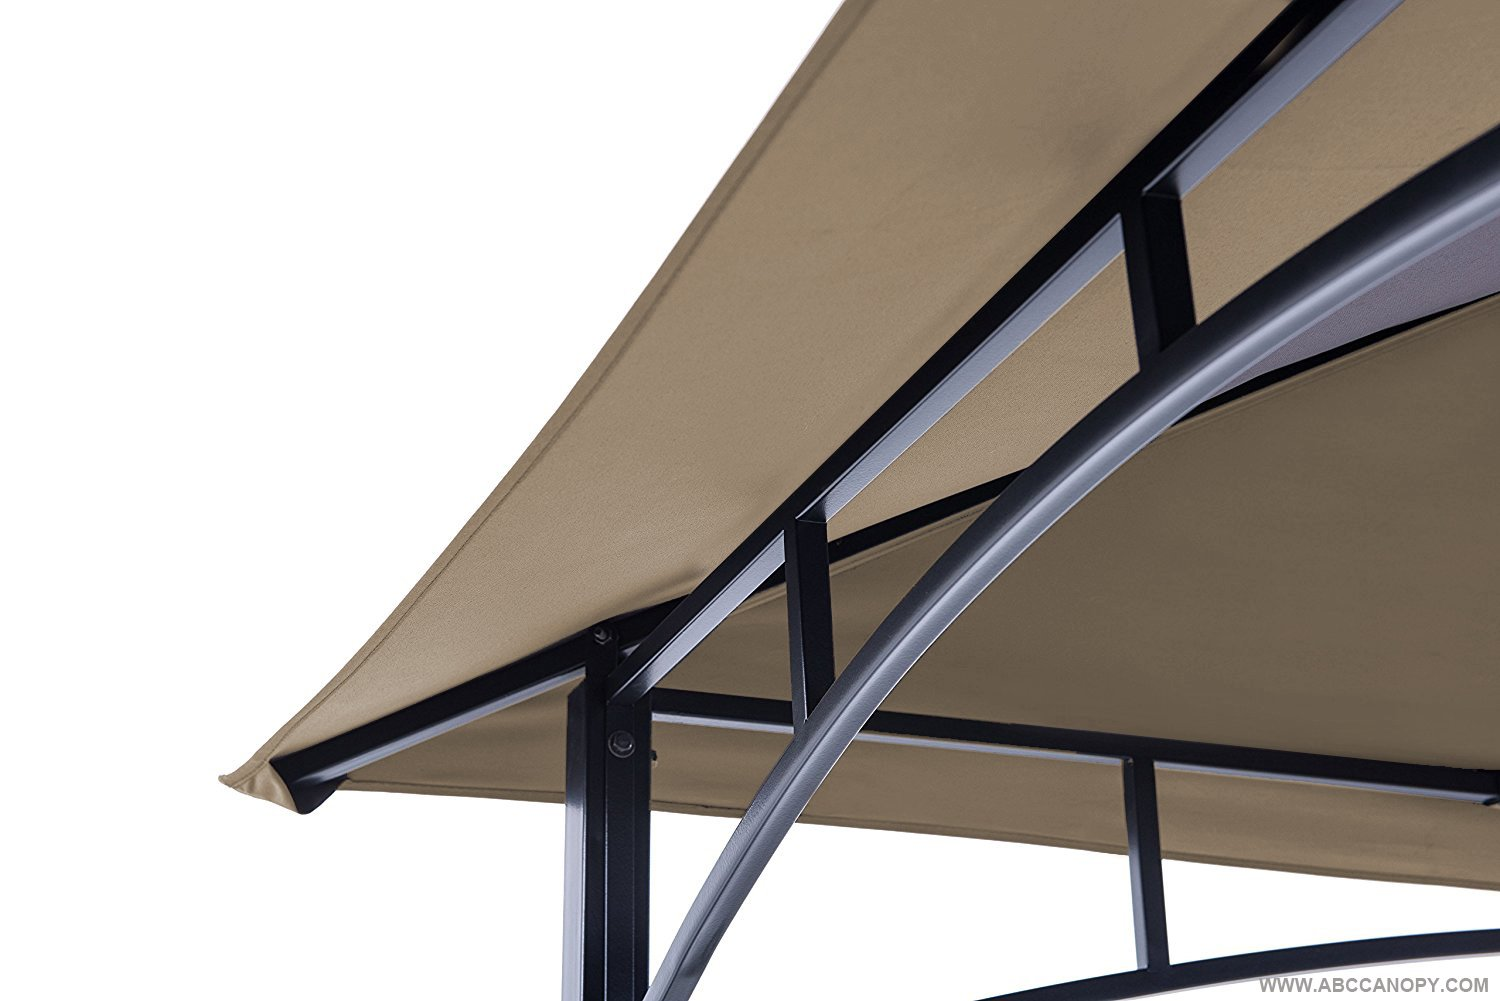 ABCCANOPY Grill Shelter Replacement Canopy roof for Model L-GZ238PST-11 (Beige) by ABCCANOPY (Image #4)